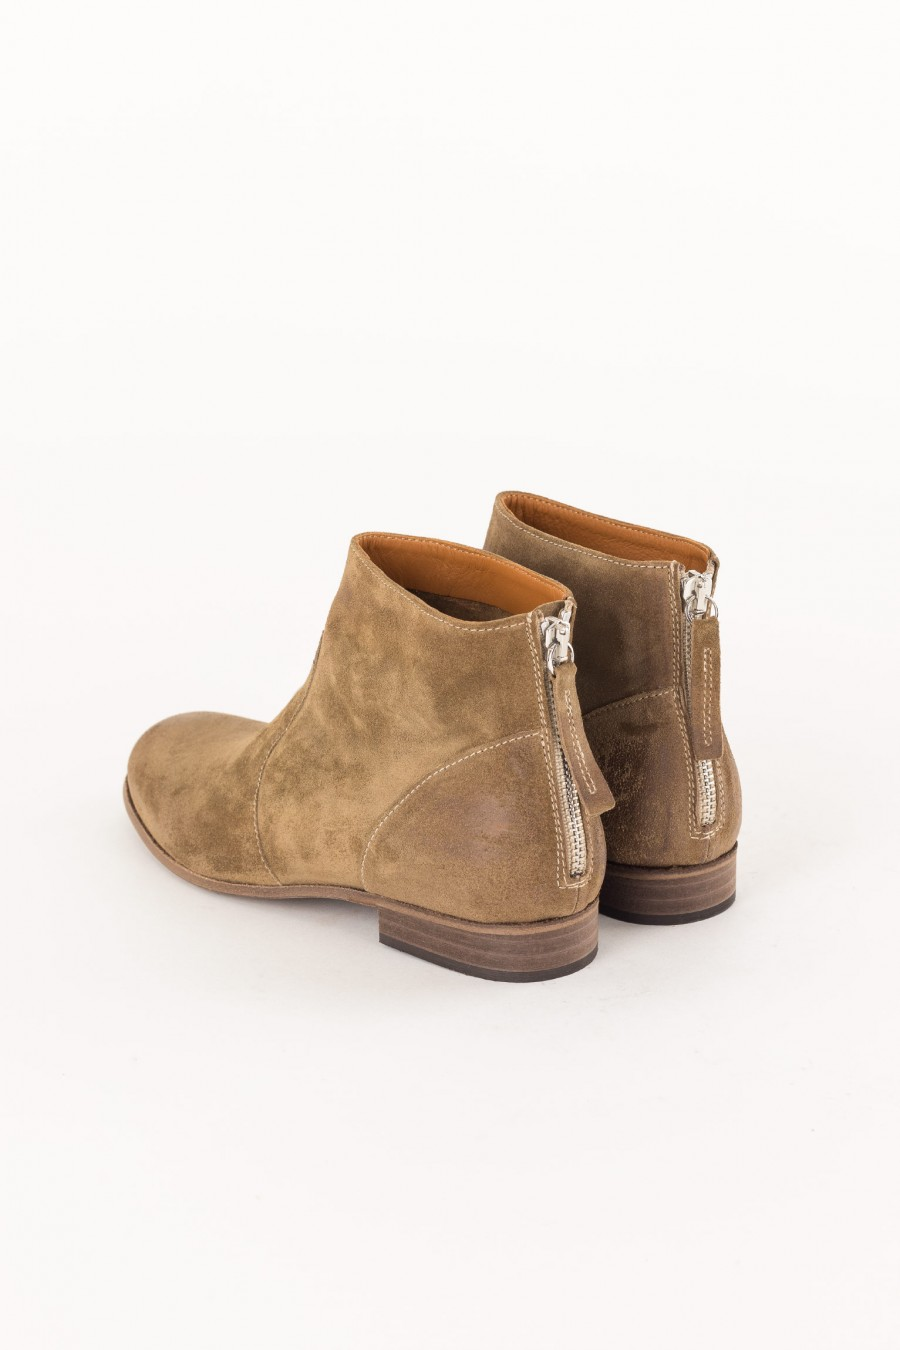 walnut colored ankle boot